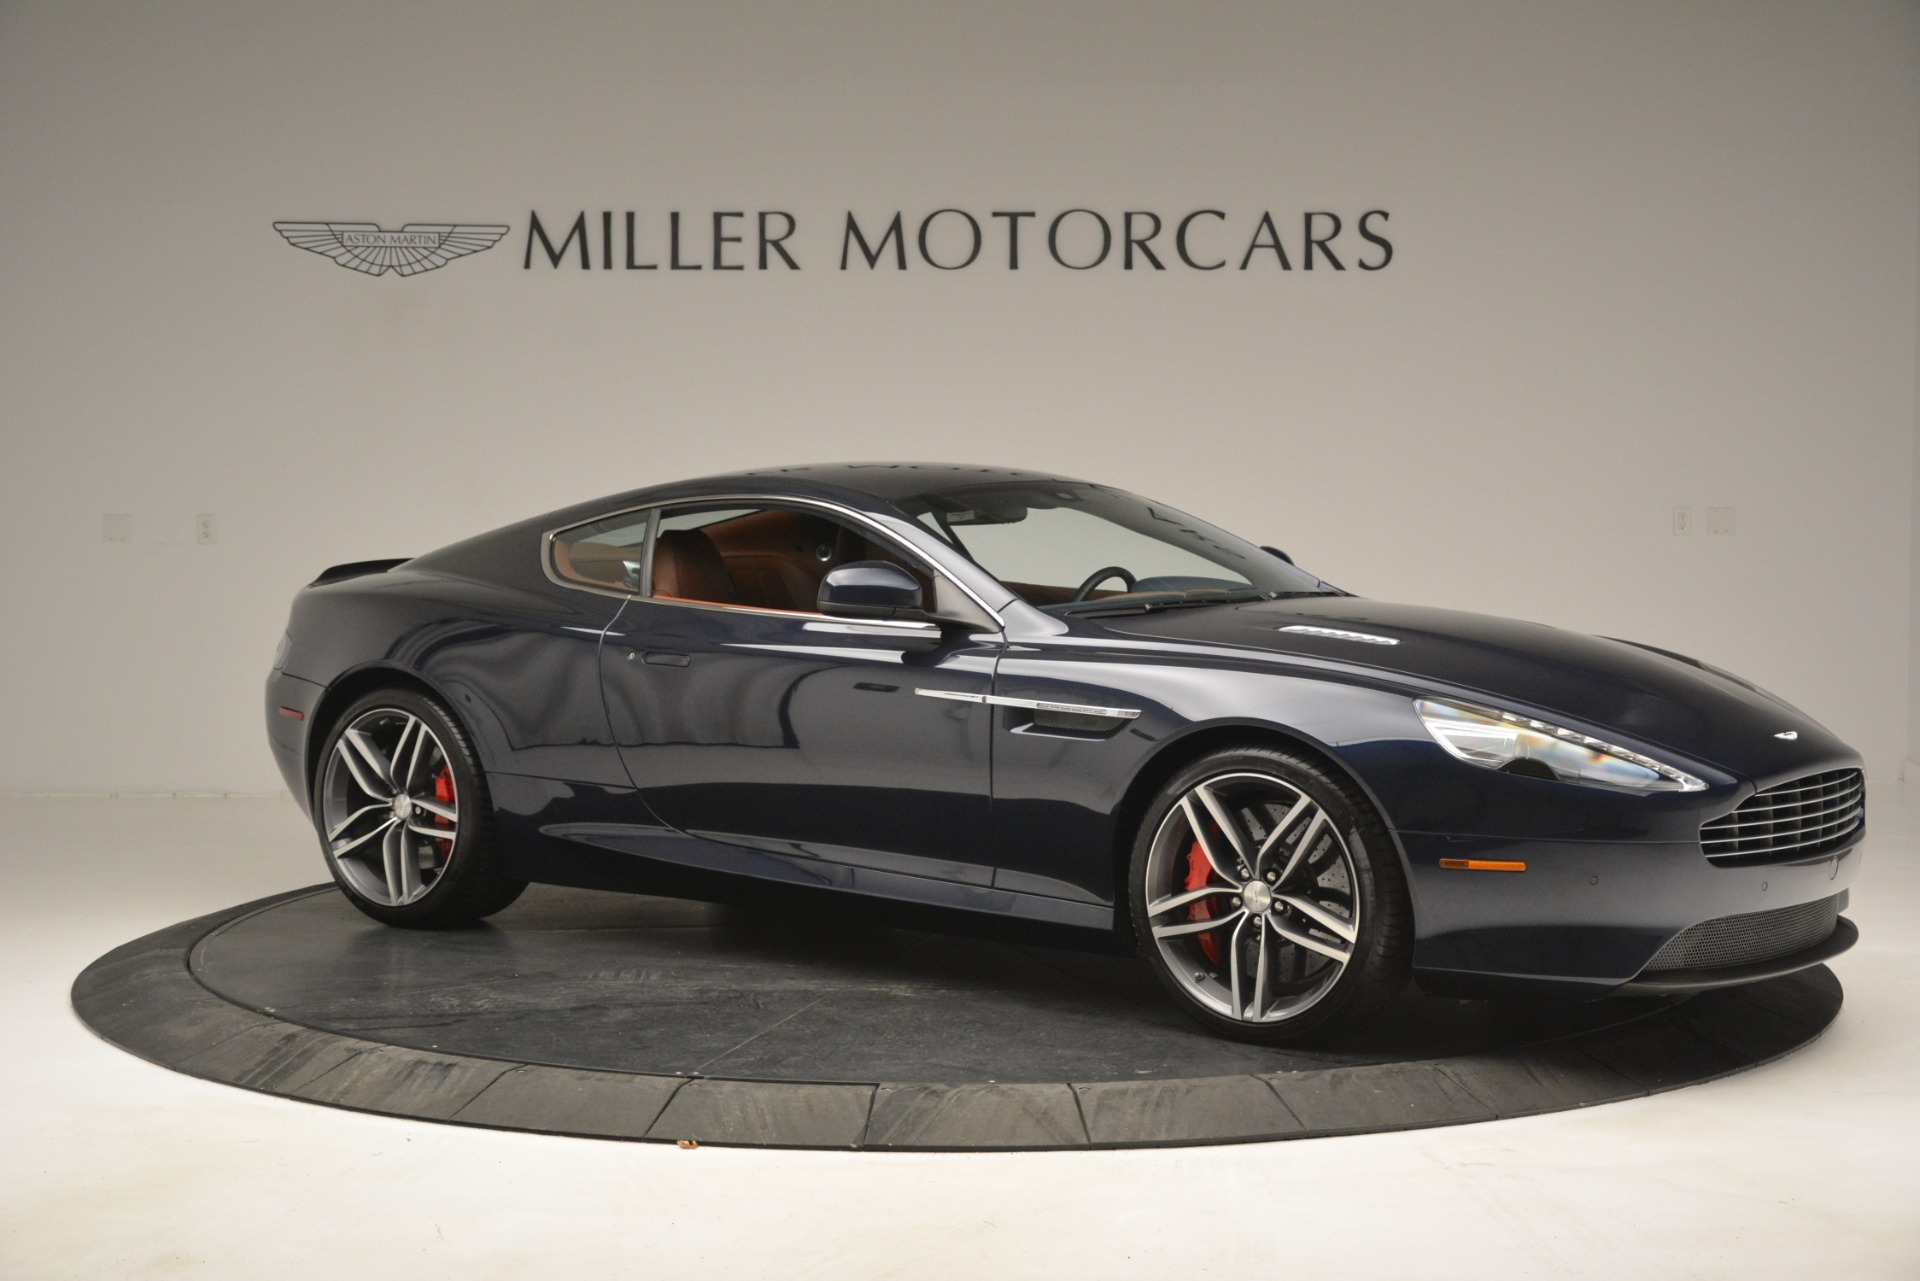 Used 2014 Aston Martin DB9 Coupe For Sale In Westport, CT 3010_p10